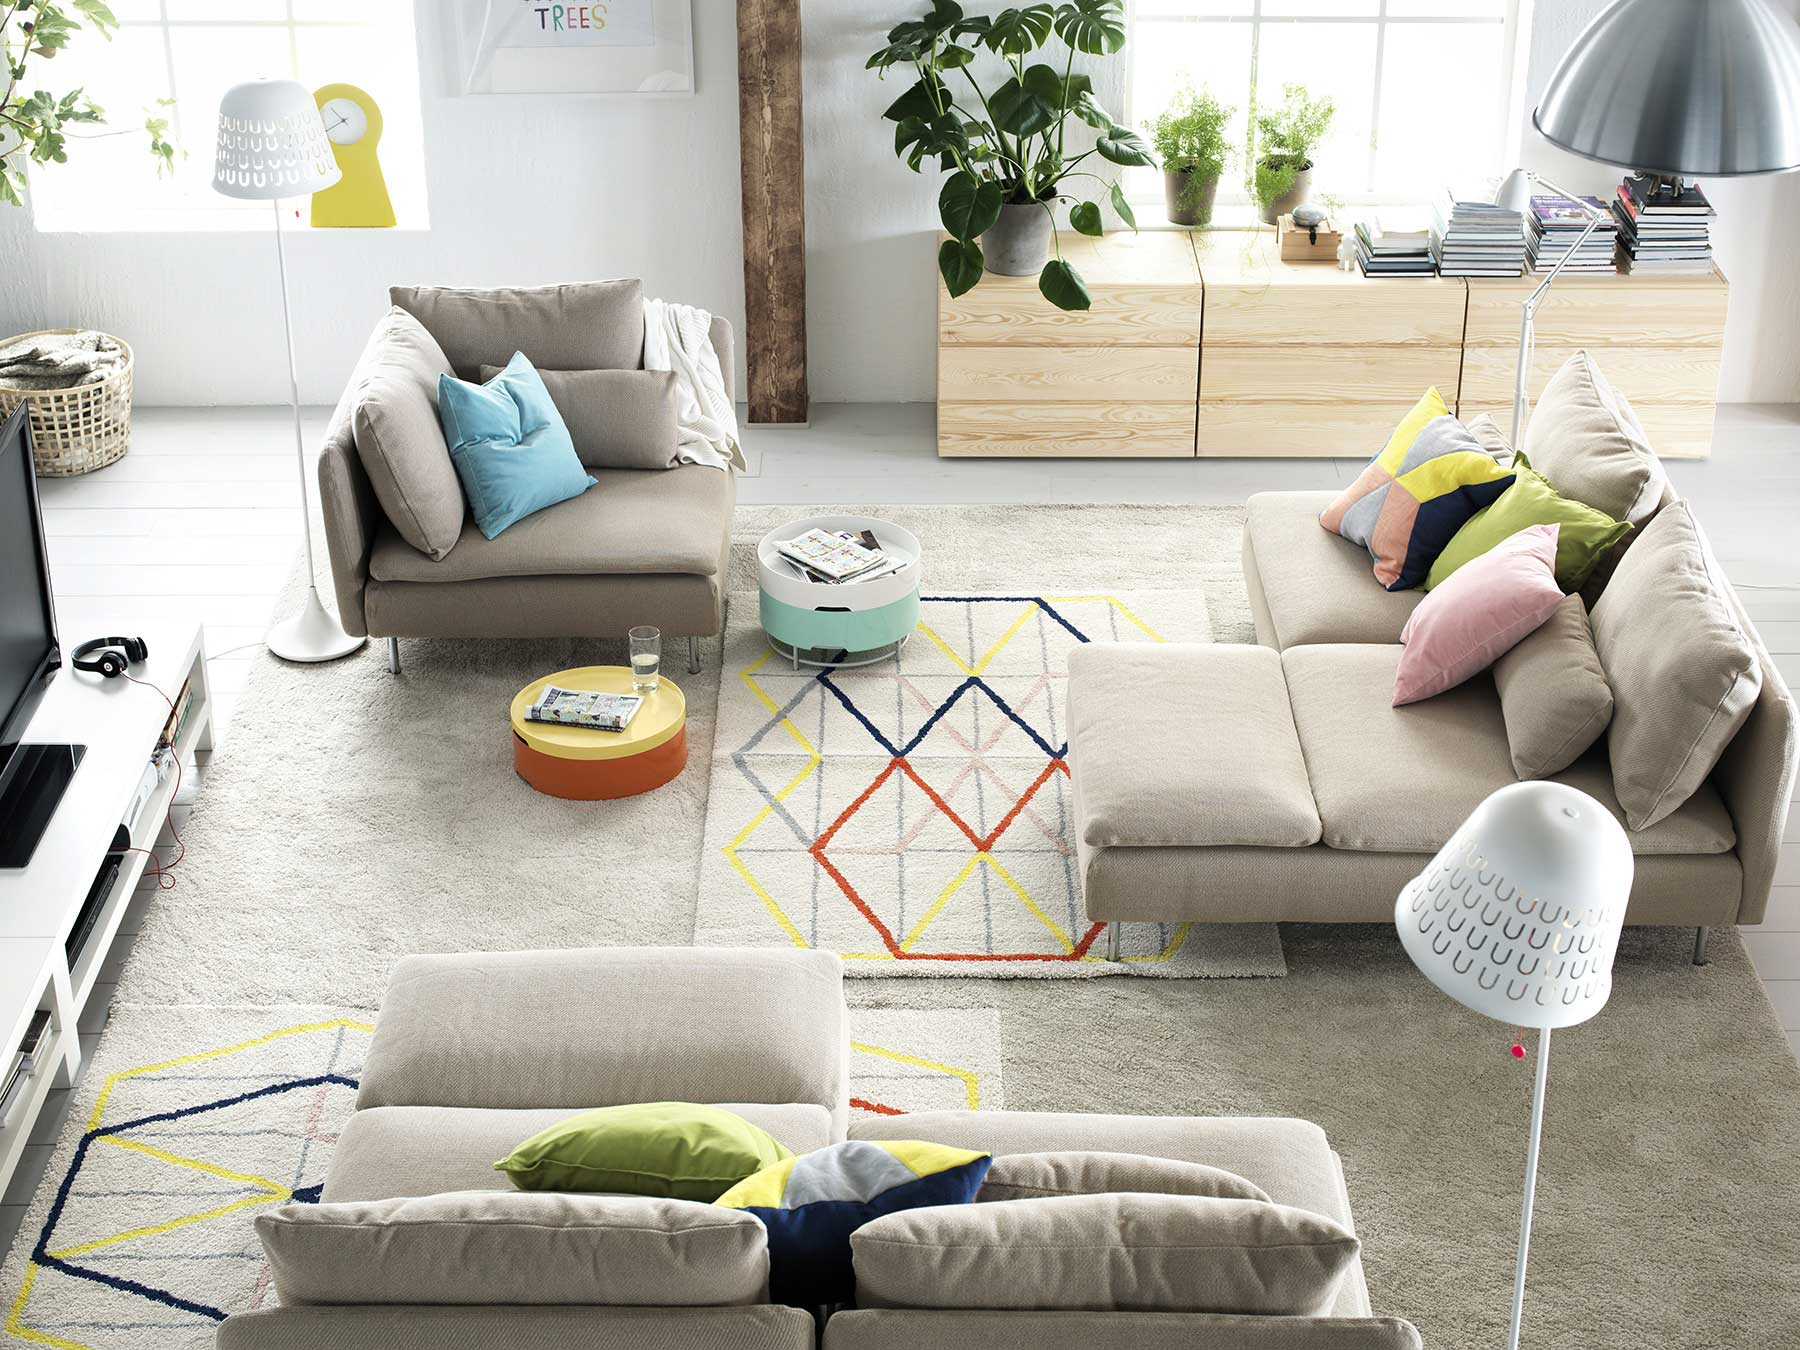 32 ambiances du catalogue ikea 2015 for Ikea living room design ideas